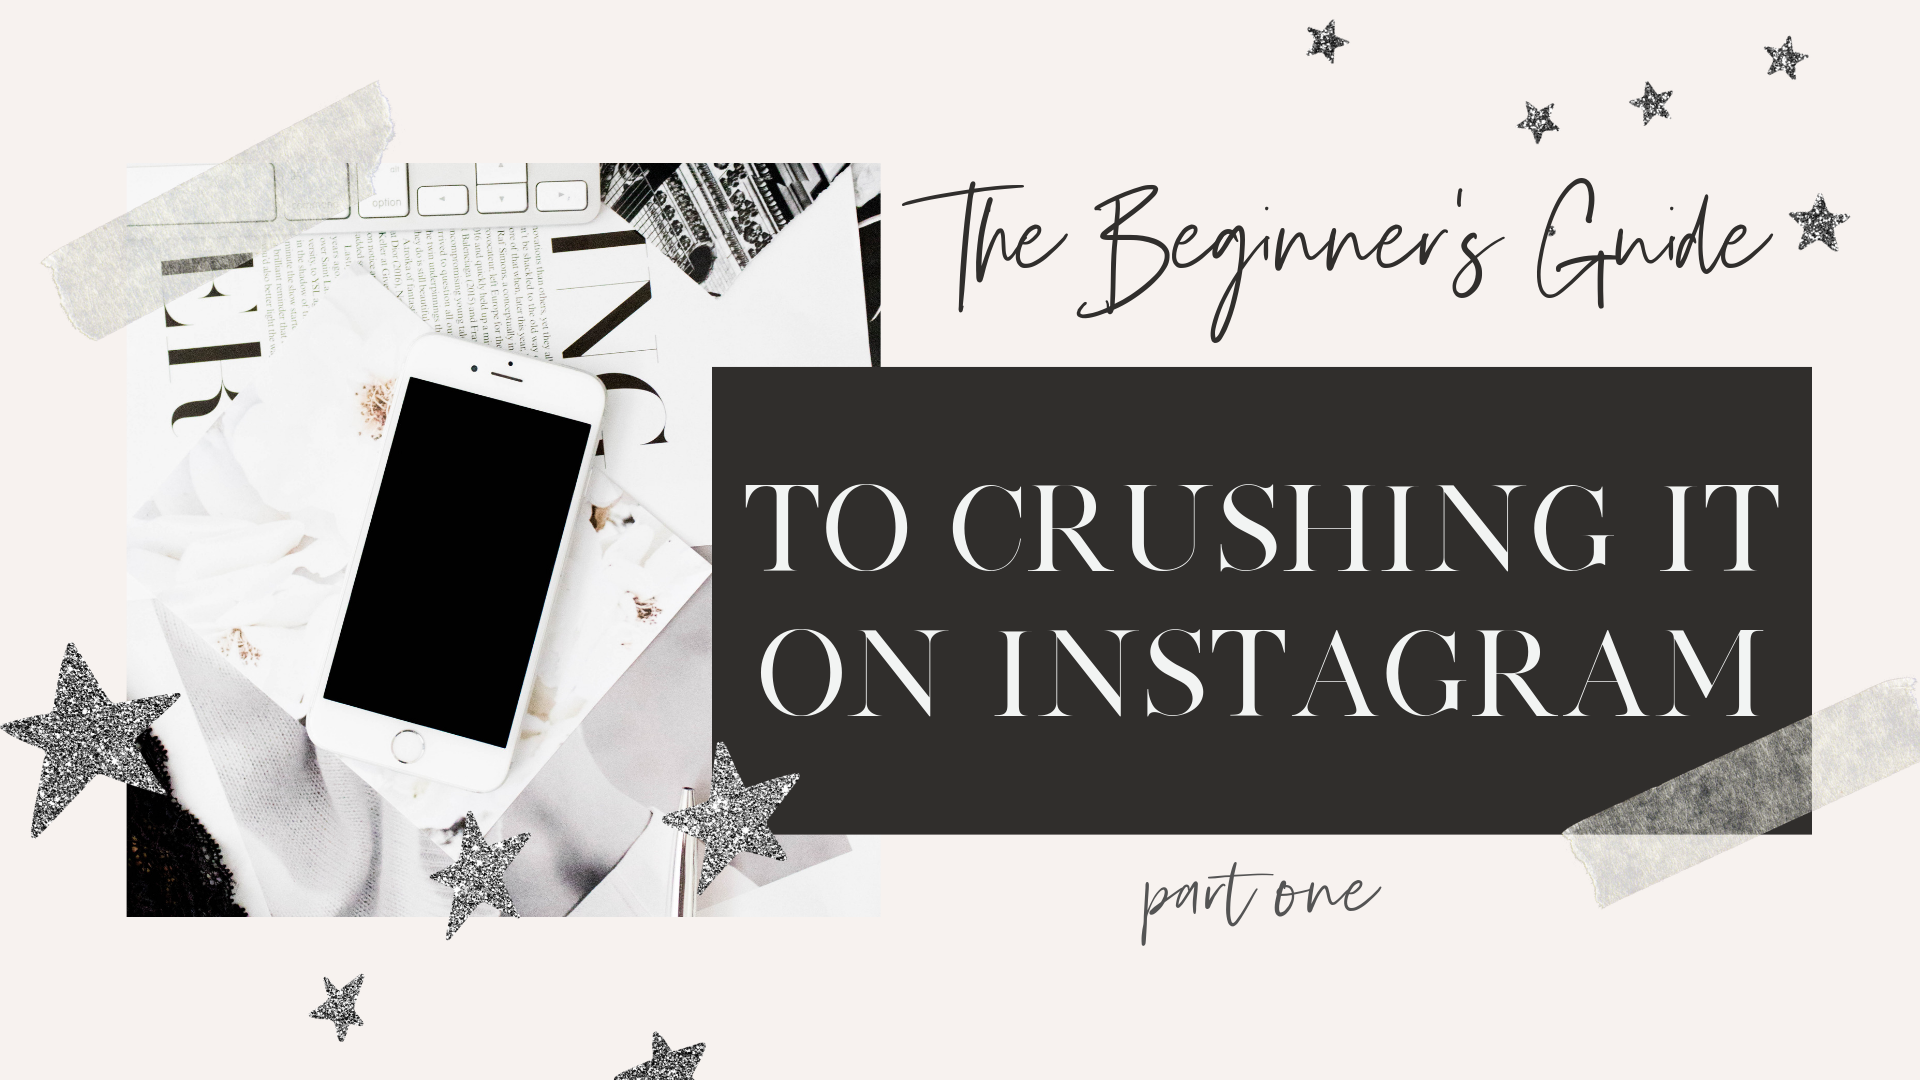 the beginner's guide to crushing it on instagram by instacrush society girlcrush collective